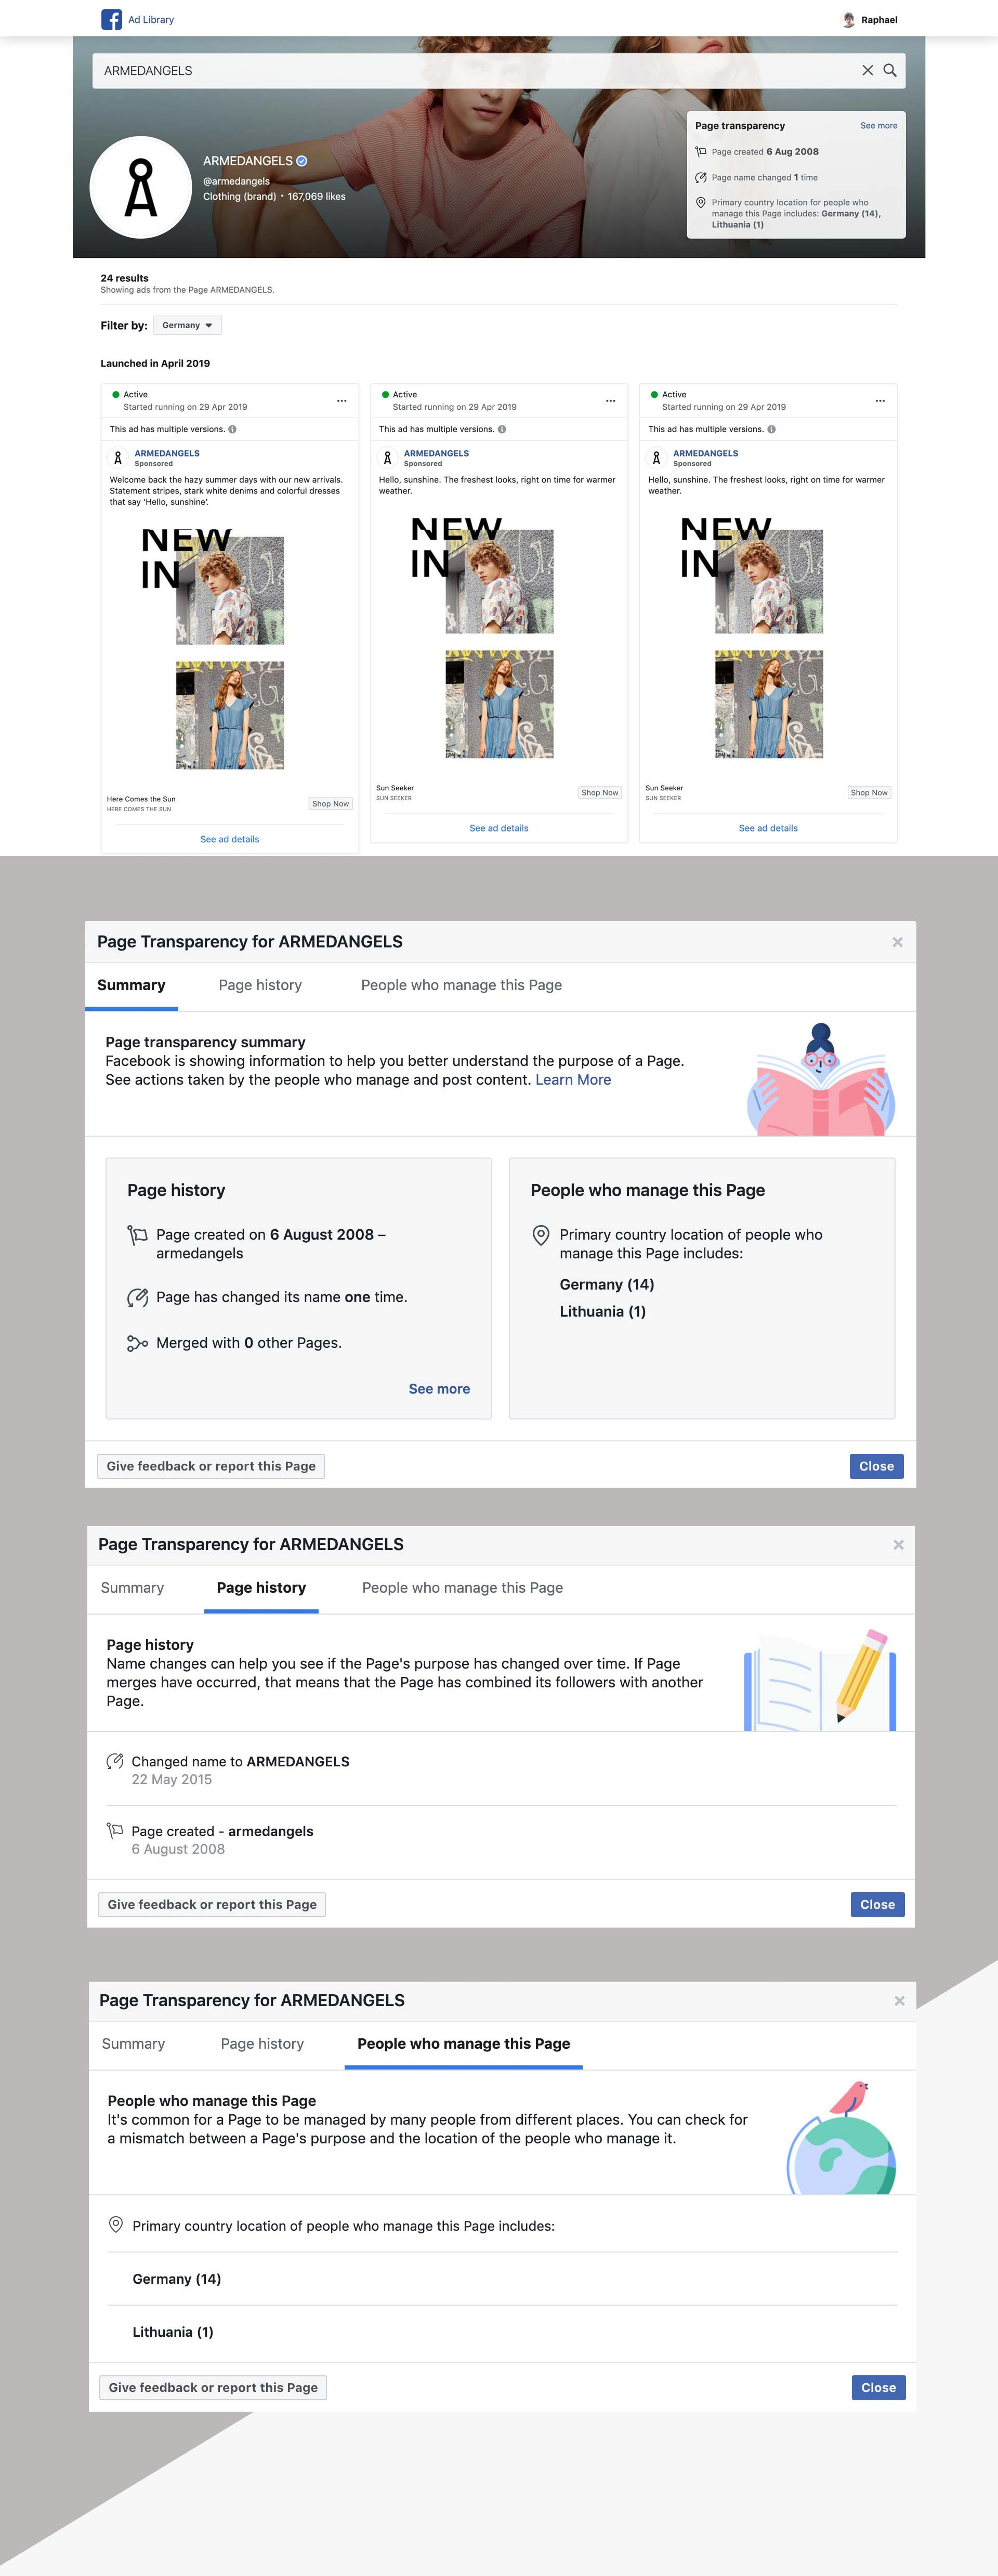 The secret facebook search engine – Tool Tip